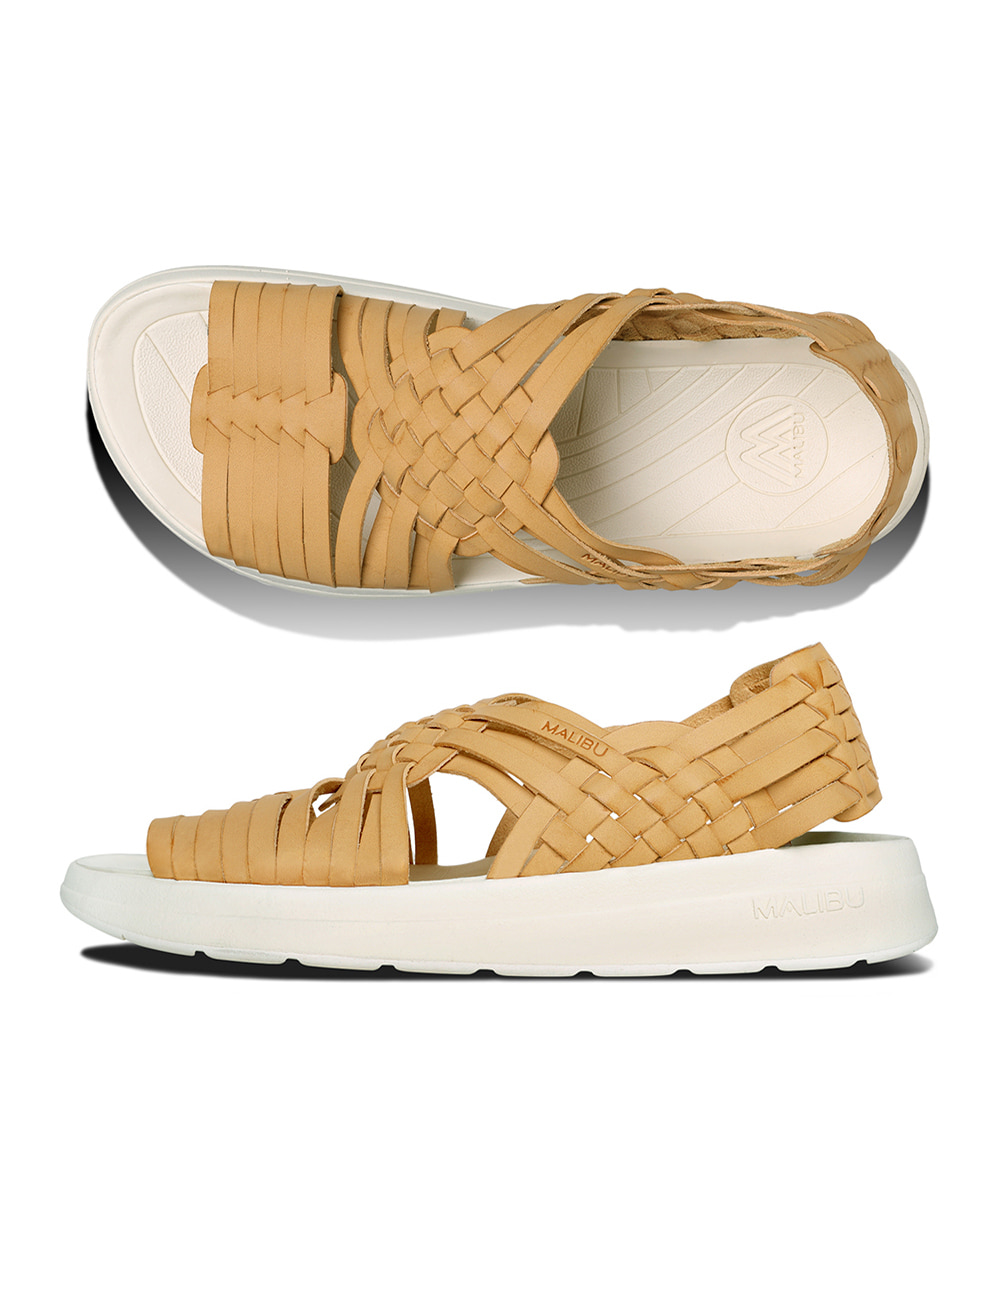 MALIBU : CANYON VEGAN LEATHER (BEIGE/PAPYRUS)